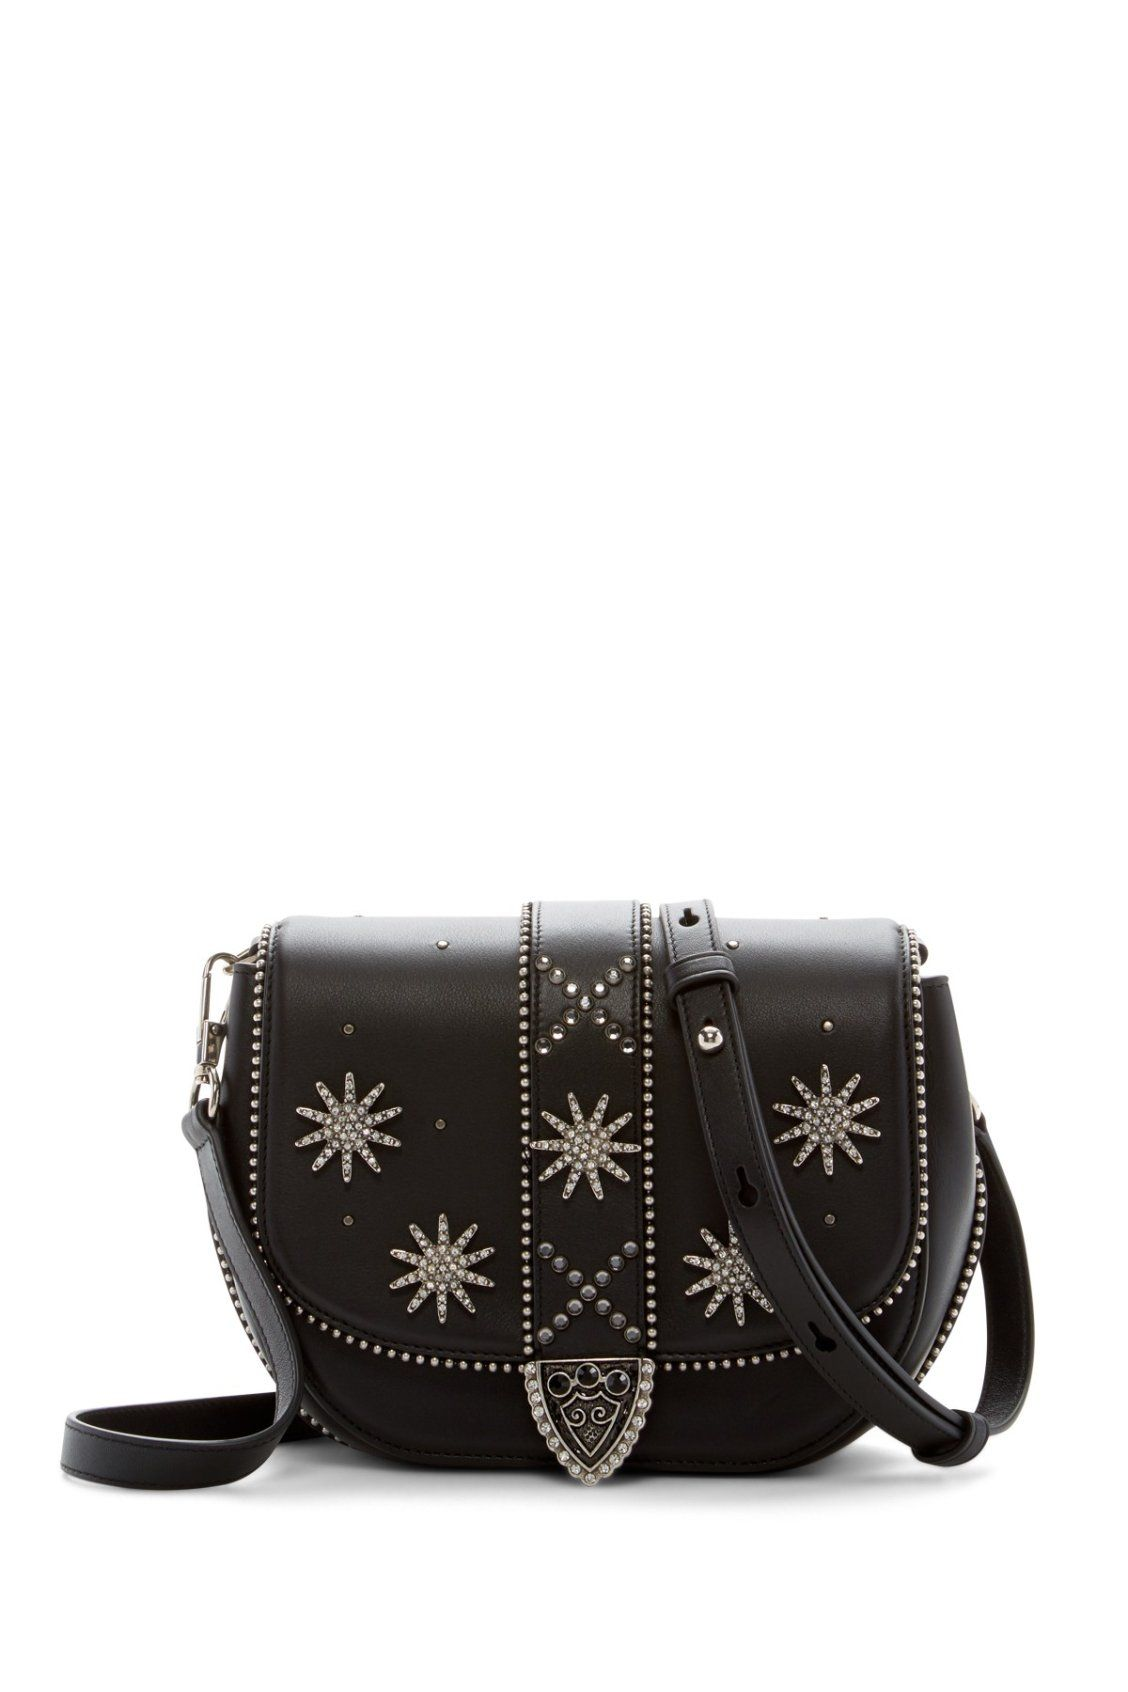 330f91af0f6b Obsessing over this Marc Jacobs Jane Leather Saddle Bag